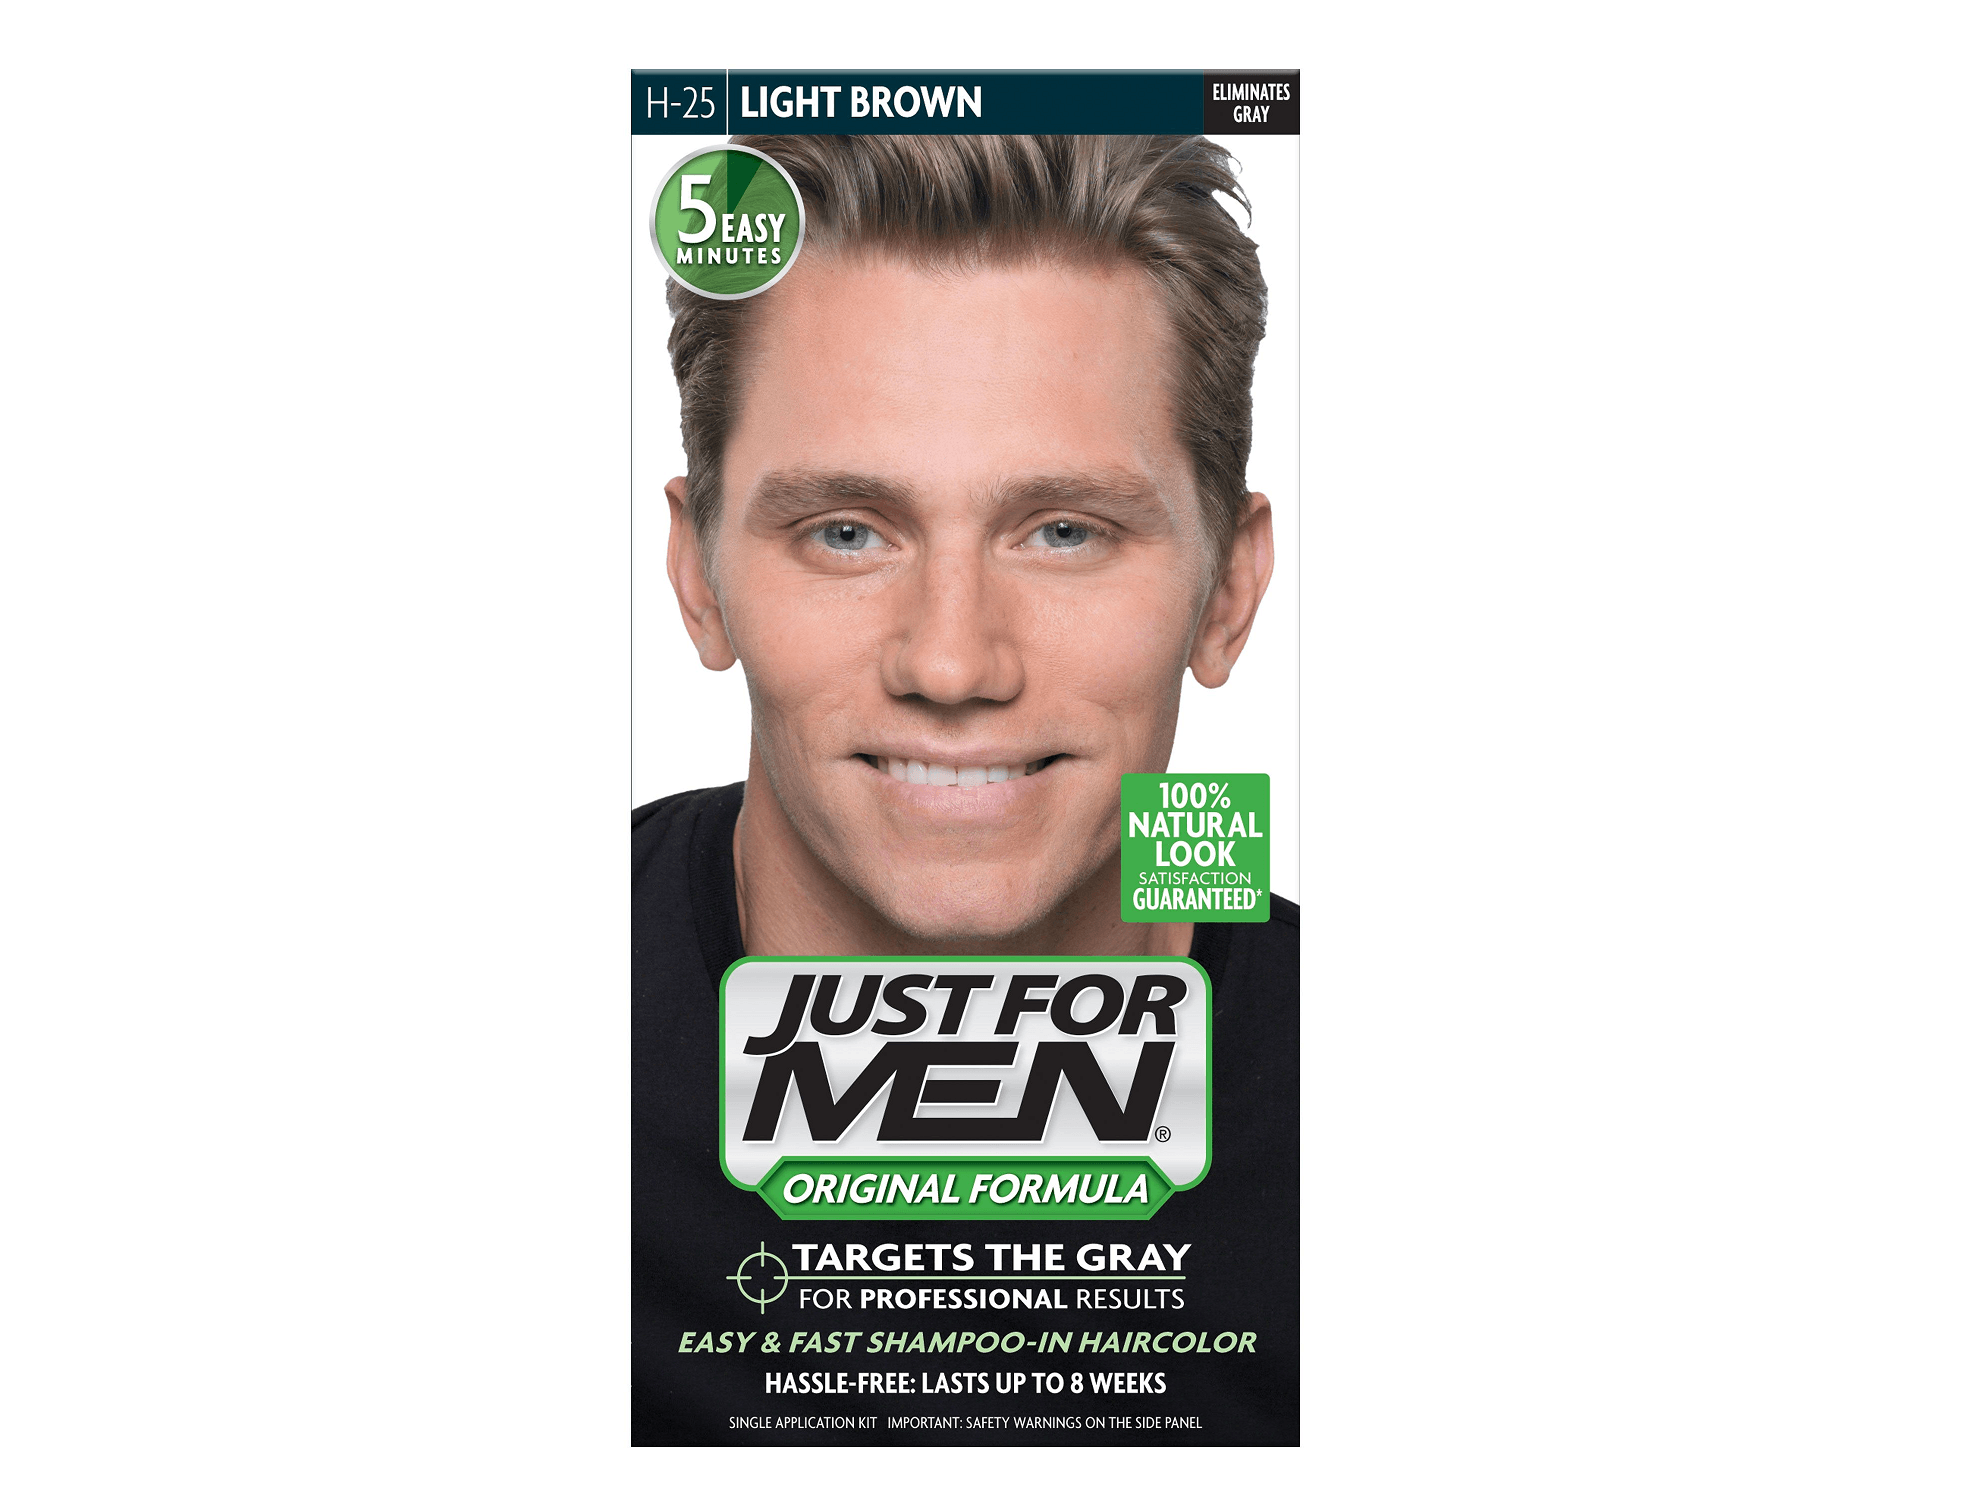 Just for men hair dye